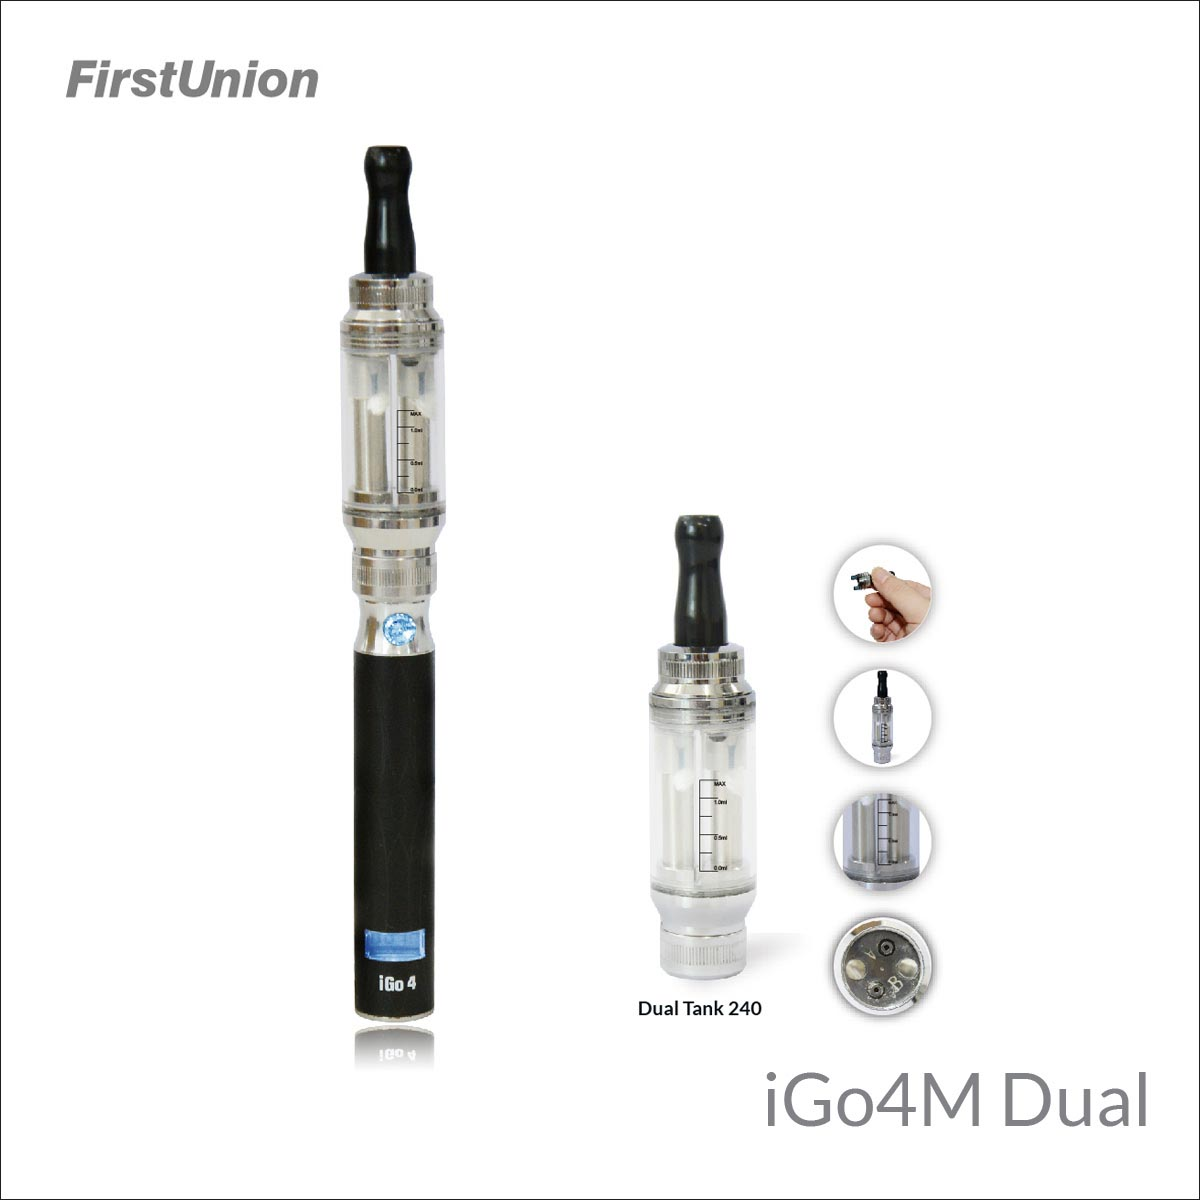 Firstunion new style elite electronic cigarette iGo4M dual flavors clearomizer hookah for sale